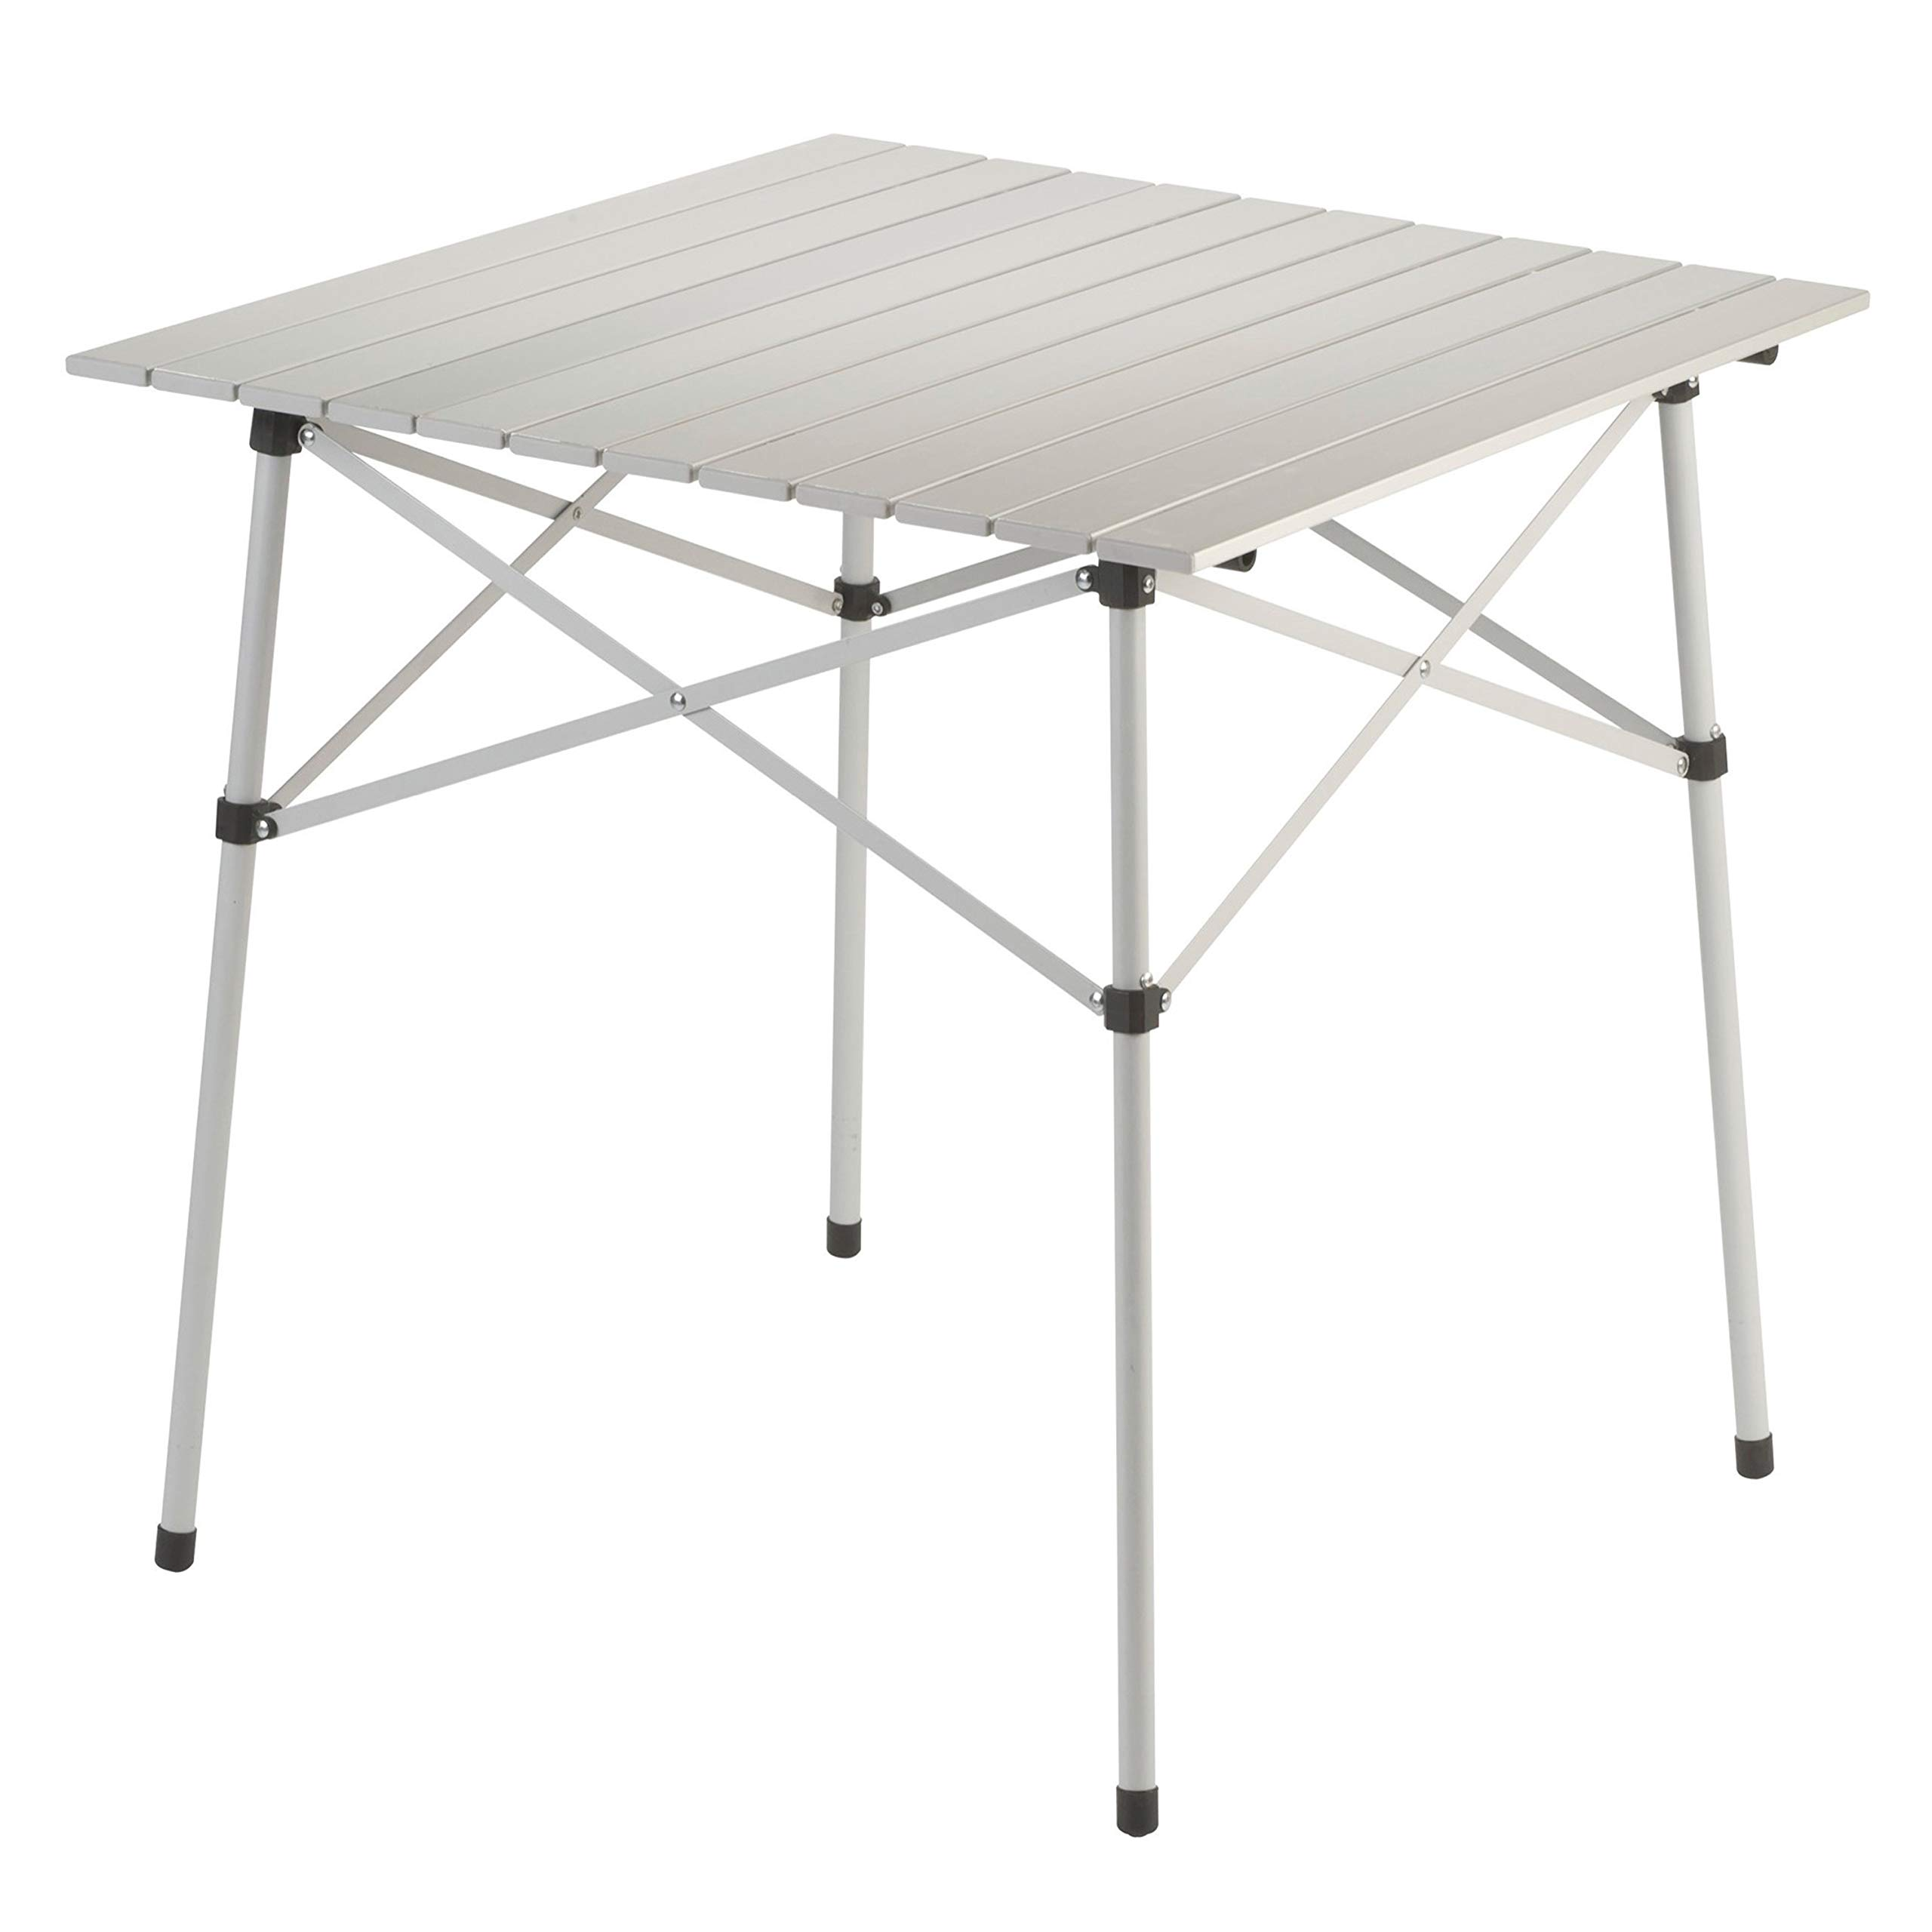 Coleman Outdoor Folding Table | Ultra Compact Aluminum Camping Table by Coleman